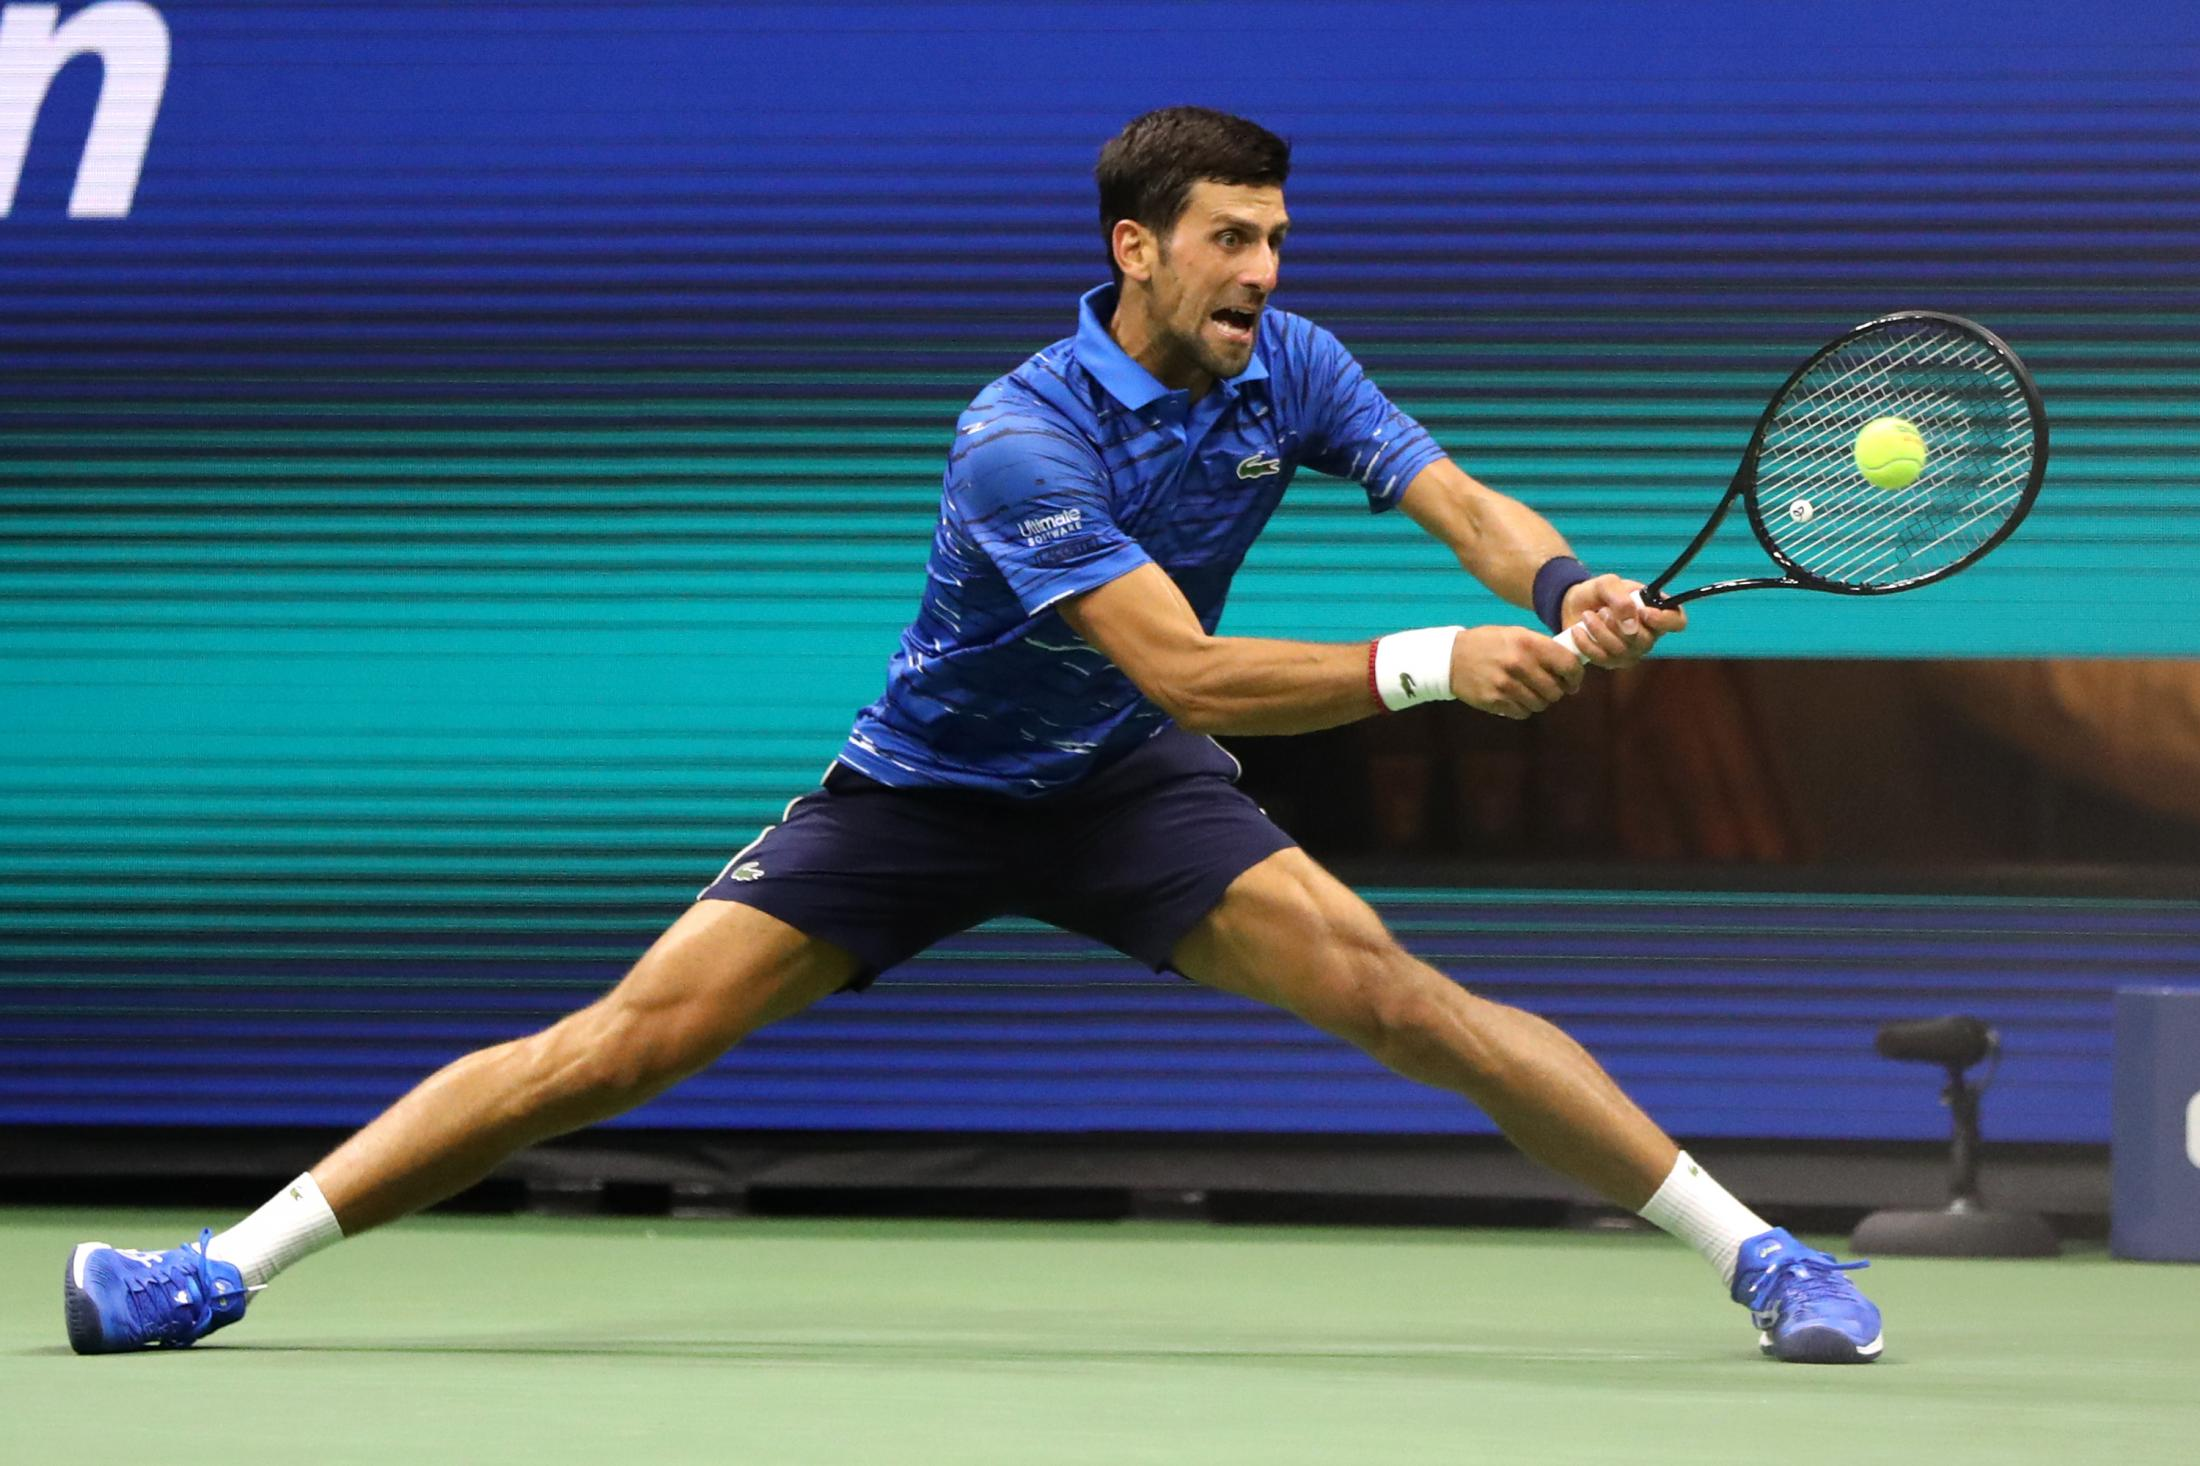 NEW YORK, NEW YORK - AUGUST 28: Novak Djokovic of Serbia returns a shot during his Men's Singles second round match against Juan Ignacio Londero of Argentina on day three of the 2019 US Open at the USTA Billie Jean King National Tennis Center on August 28, 2019 in the Flushing neighborhood of the Queens borough of New York City. (Photo by Katharine Lotze/Getty Images)